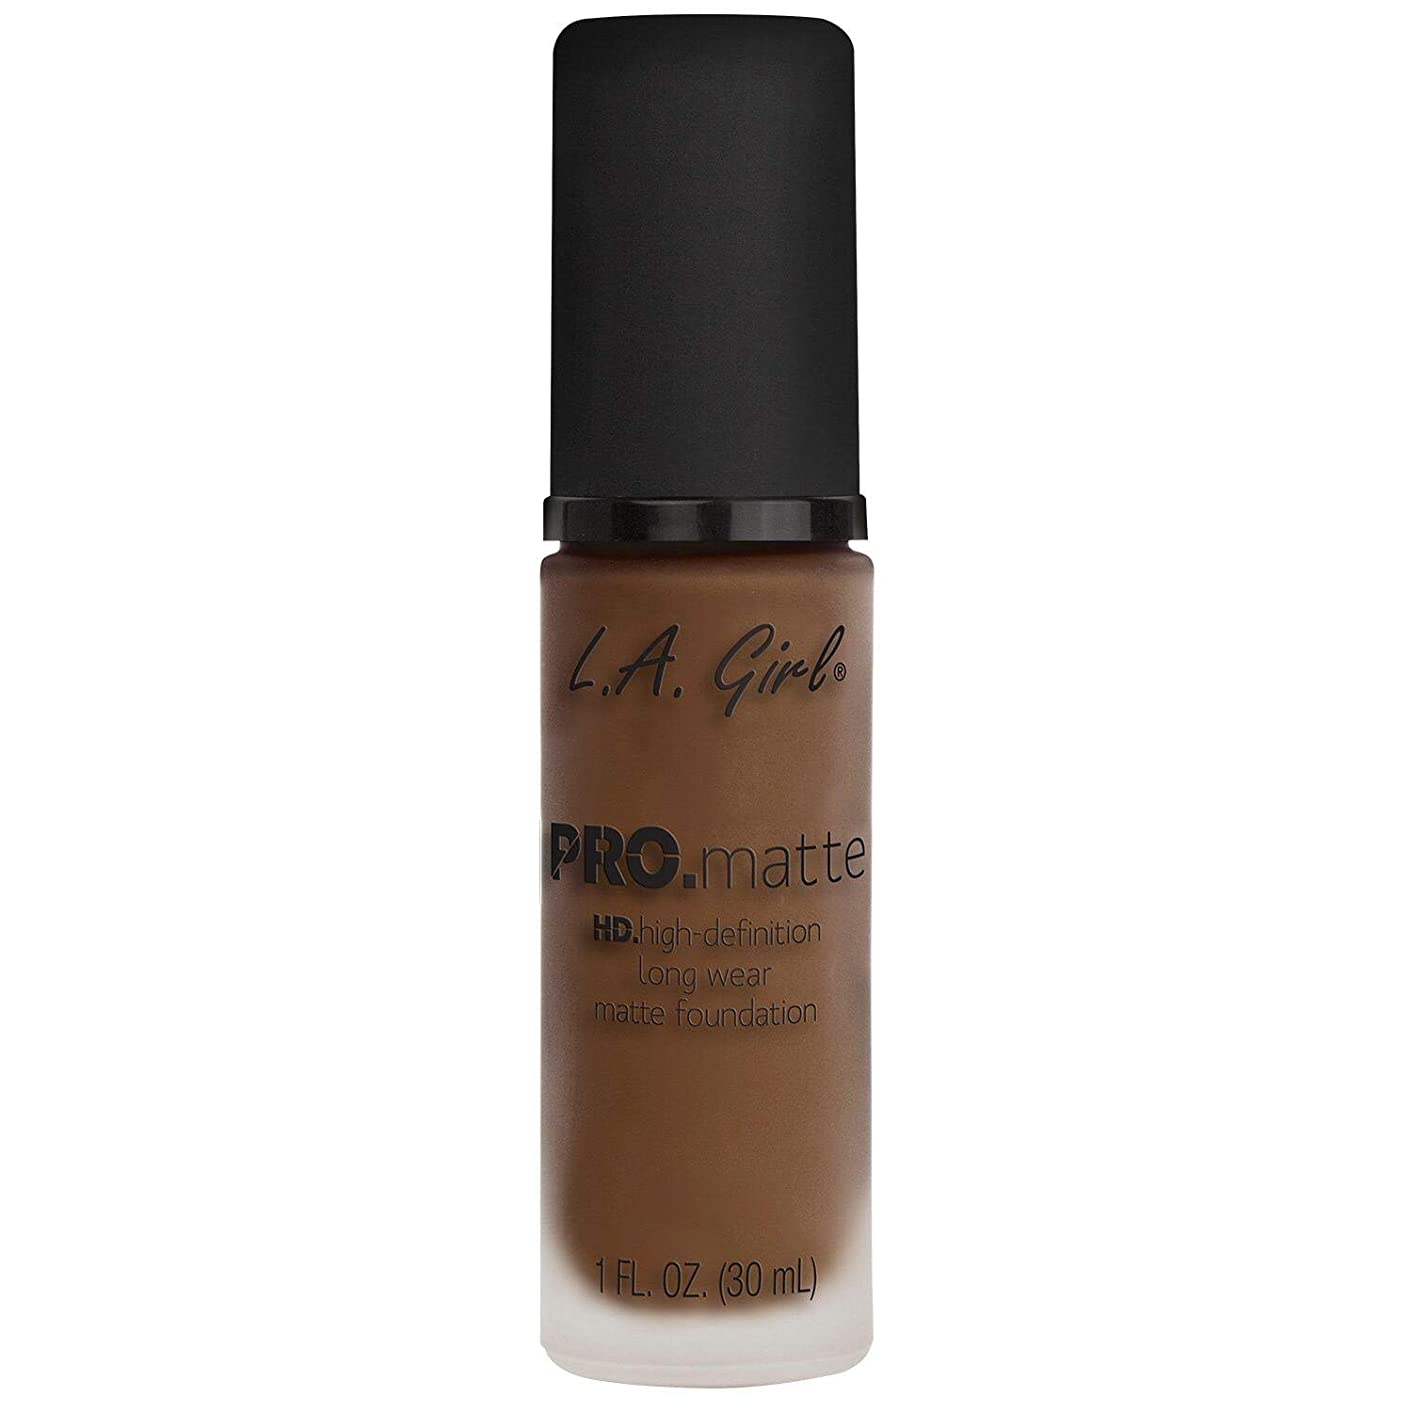 ターゲット成熟した中間(3 Pack) L.A. GIRL Pro Matte Foundation - Creamy Cocoa (並行輸入品)